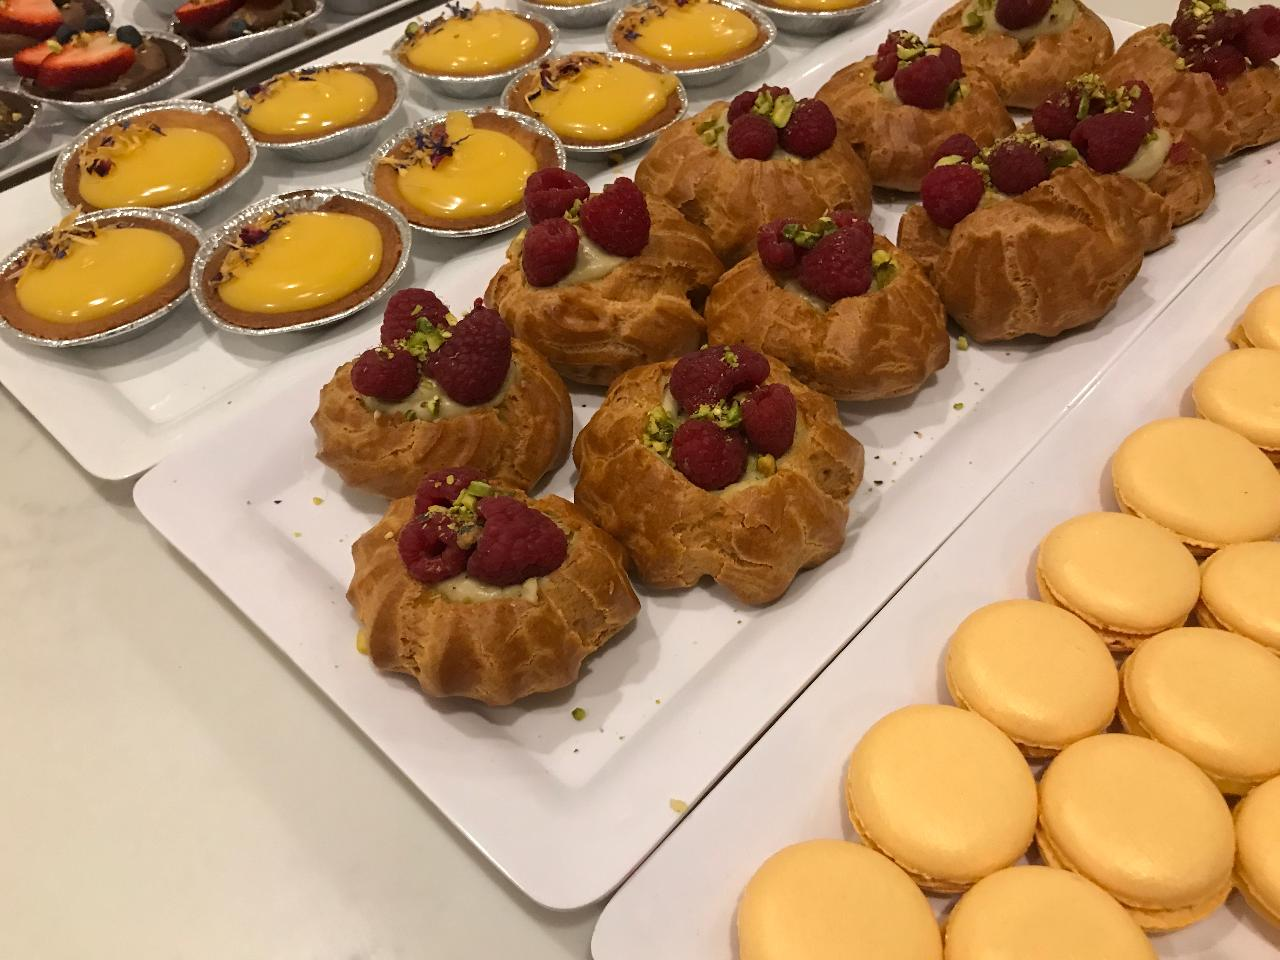 Patisserie Masterclass: Macarons, Pastries & Fillings